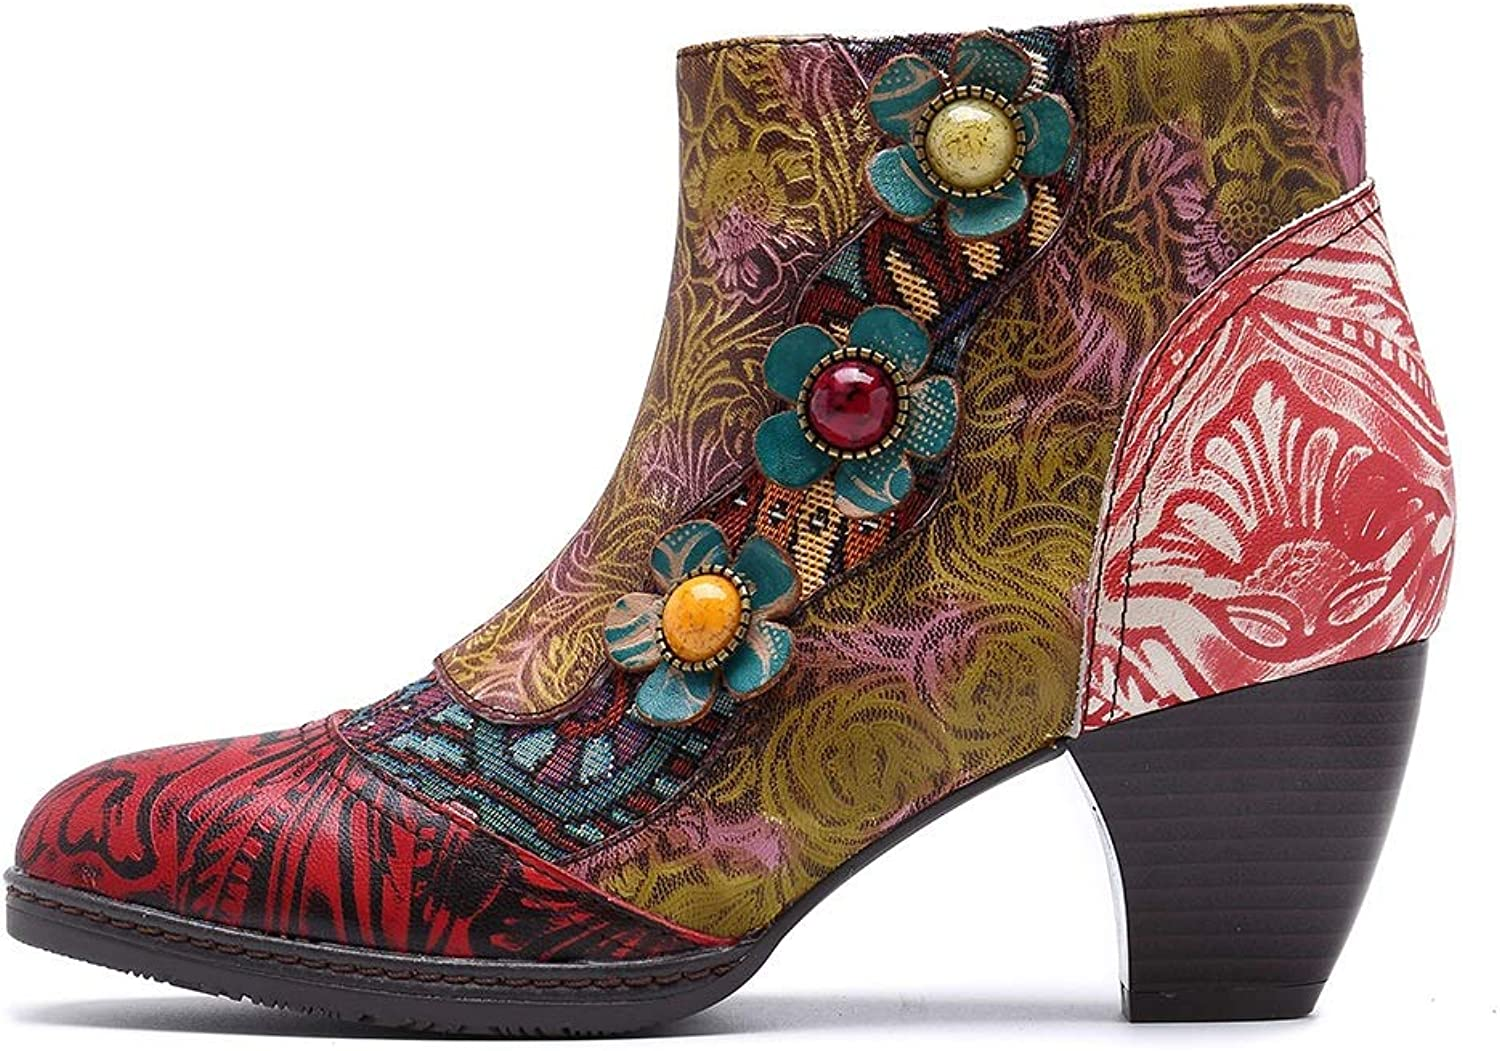 Leather Women's Boots Retro Ethnic Style Contrast color Bohemian with Denim Patchwork Leather Women's Boots (color   Green, Size   11.5US)